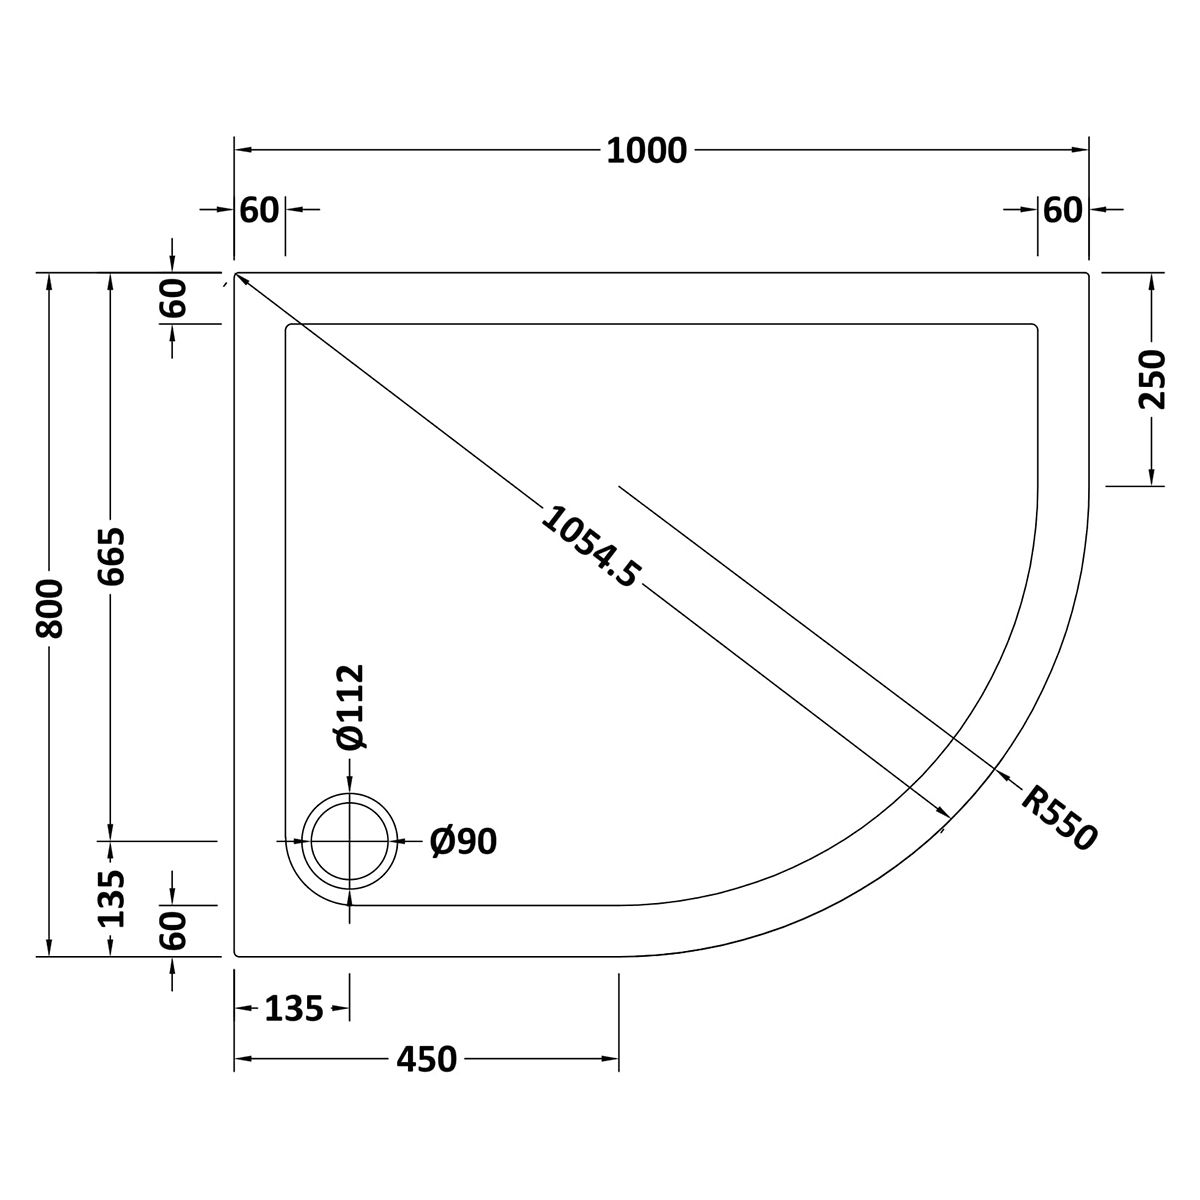 1000 x 800 Shower Tray Slate Grey Offset Quadrant Low Profile Right Hand by Pearlstone Line Drawing